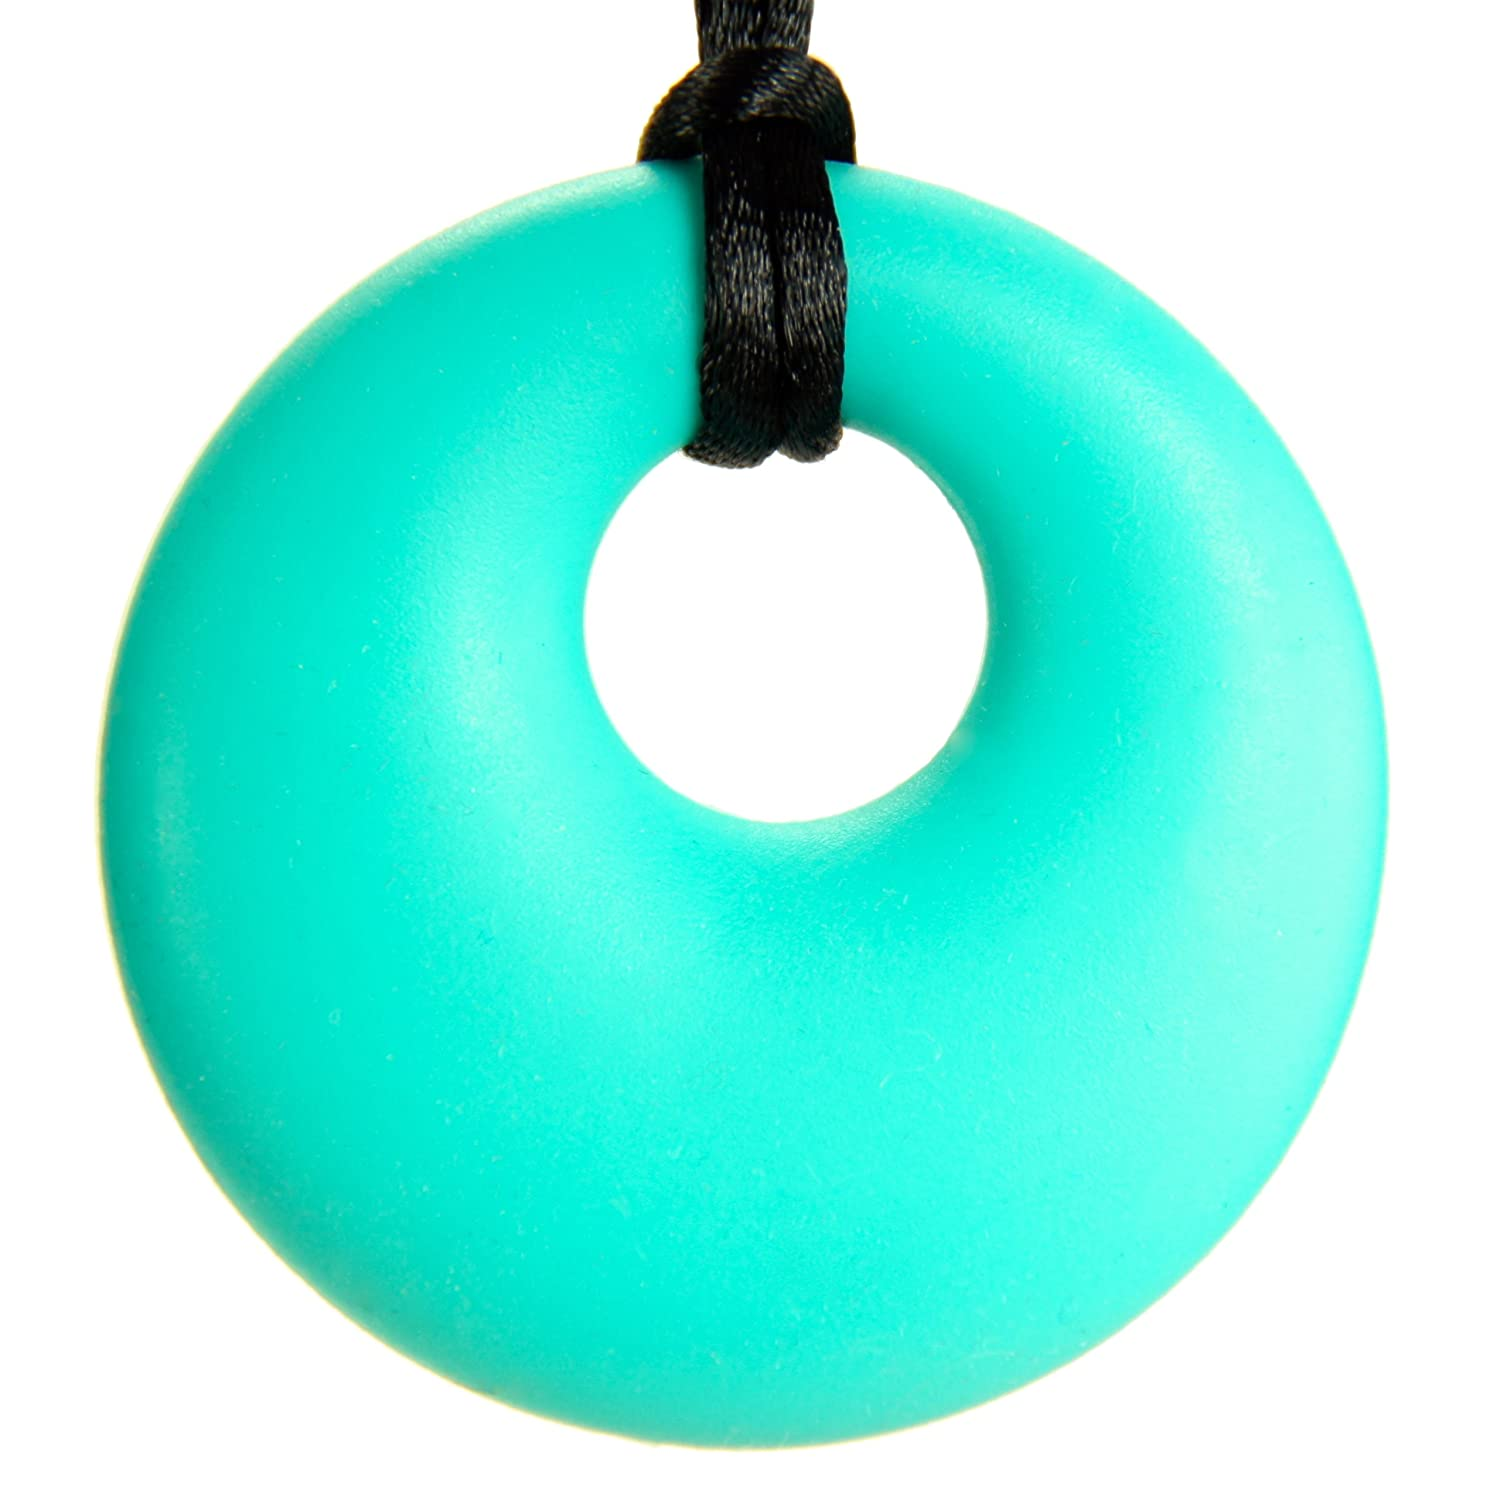 Amazon mother approved baby silicone donut teething necklace amazon mother approved baby silicone donut teething necklace turquoise toys games mozeypictures Images